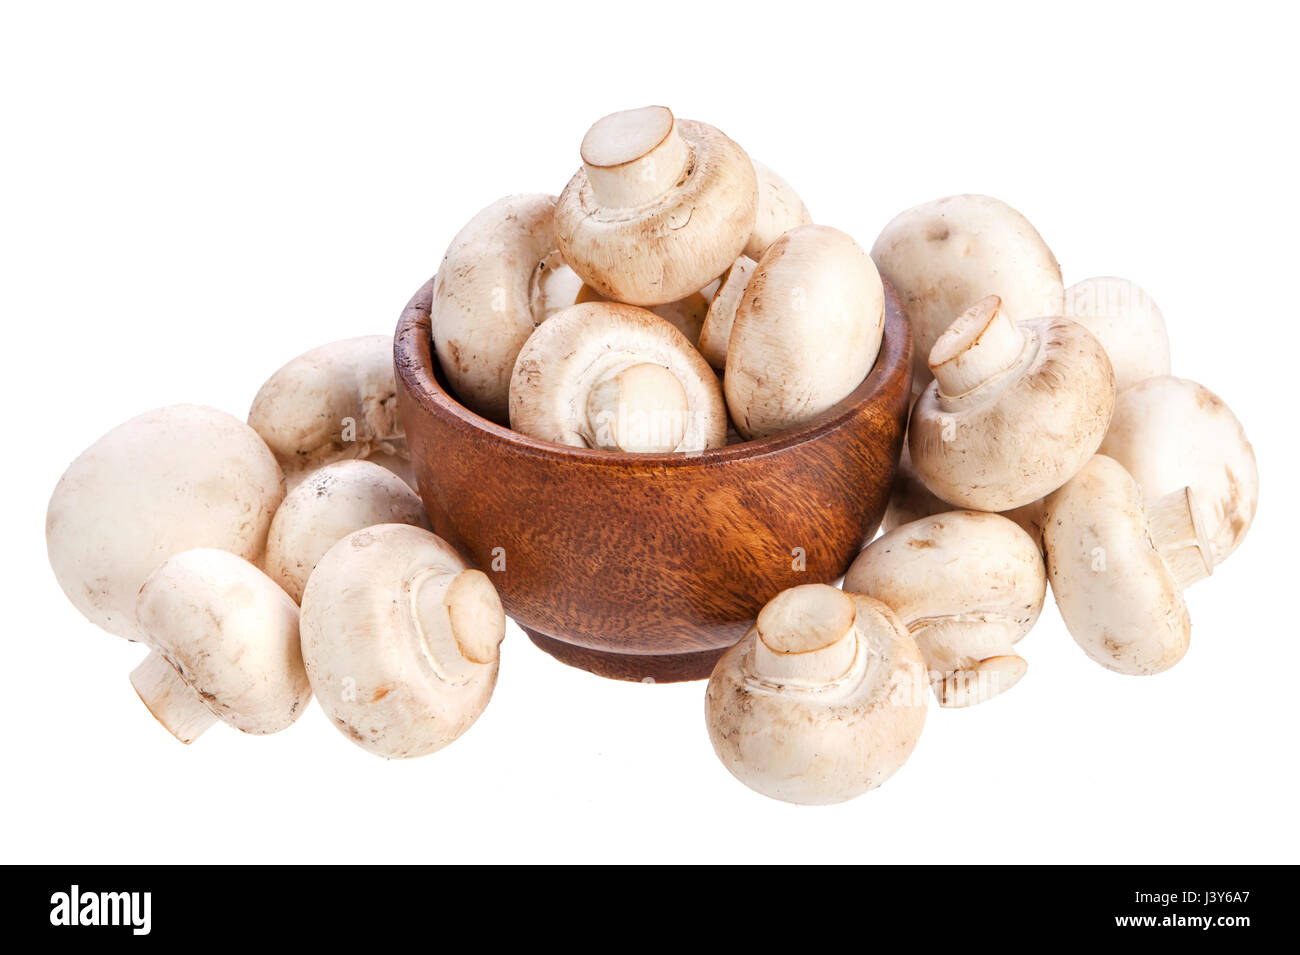 Mushroom champignon in wooden bowl isolated on white background Stock Photo